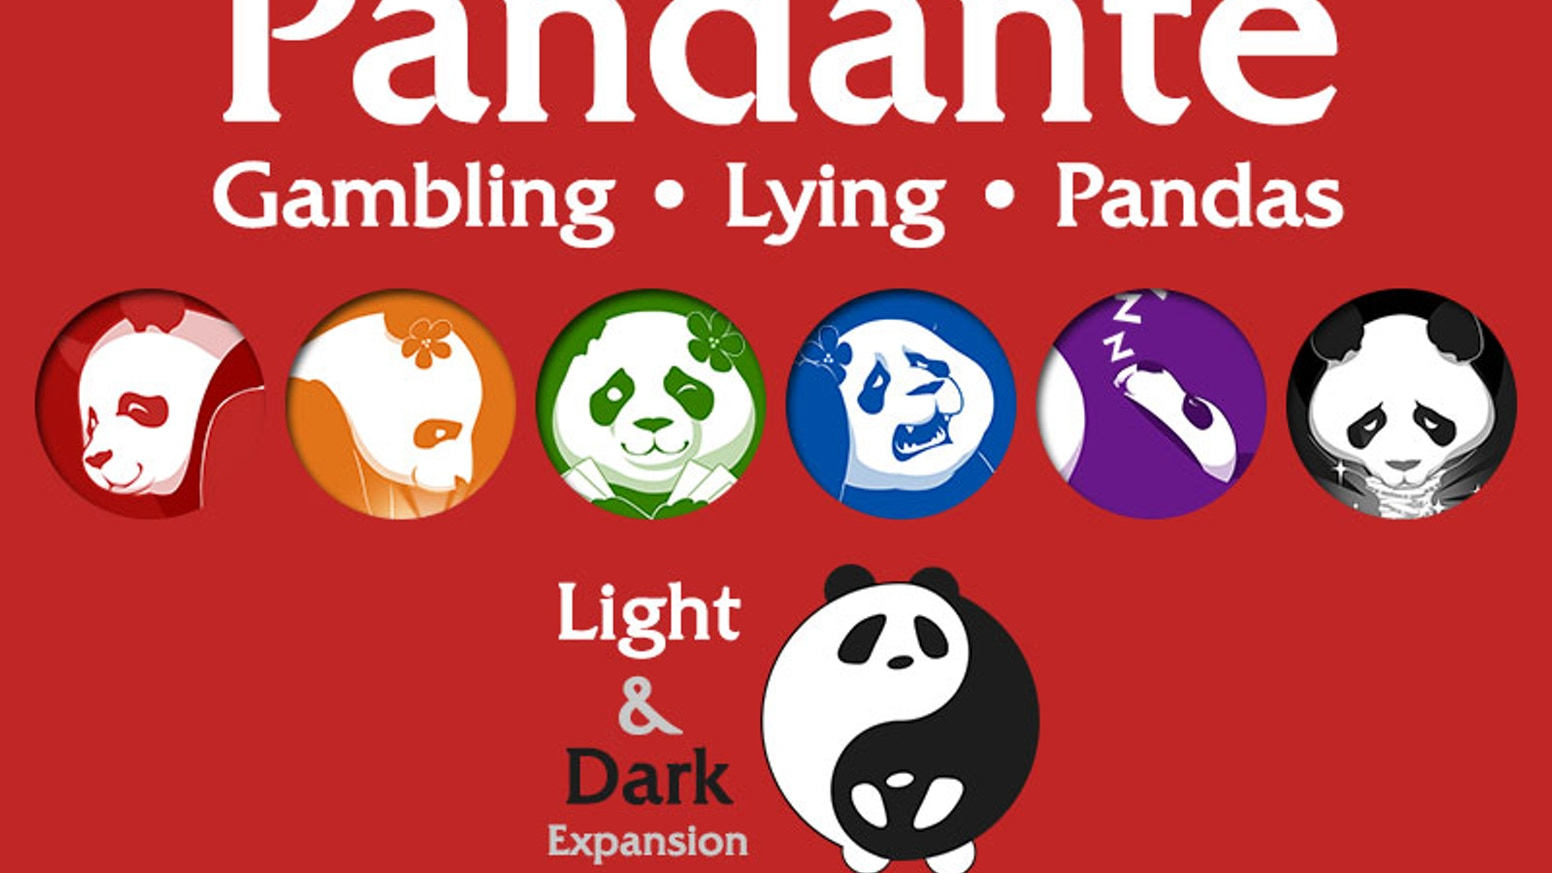 This is a Panda-themed gambling game about getting away with lying and laughing about it. Expansion and new base sets available.